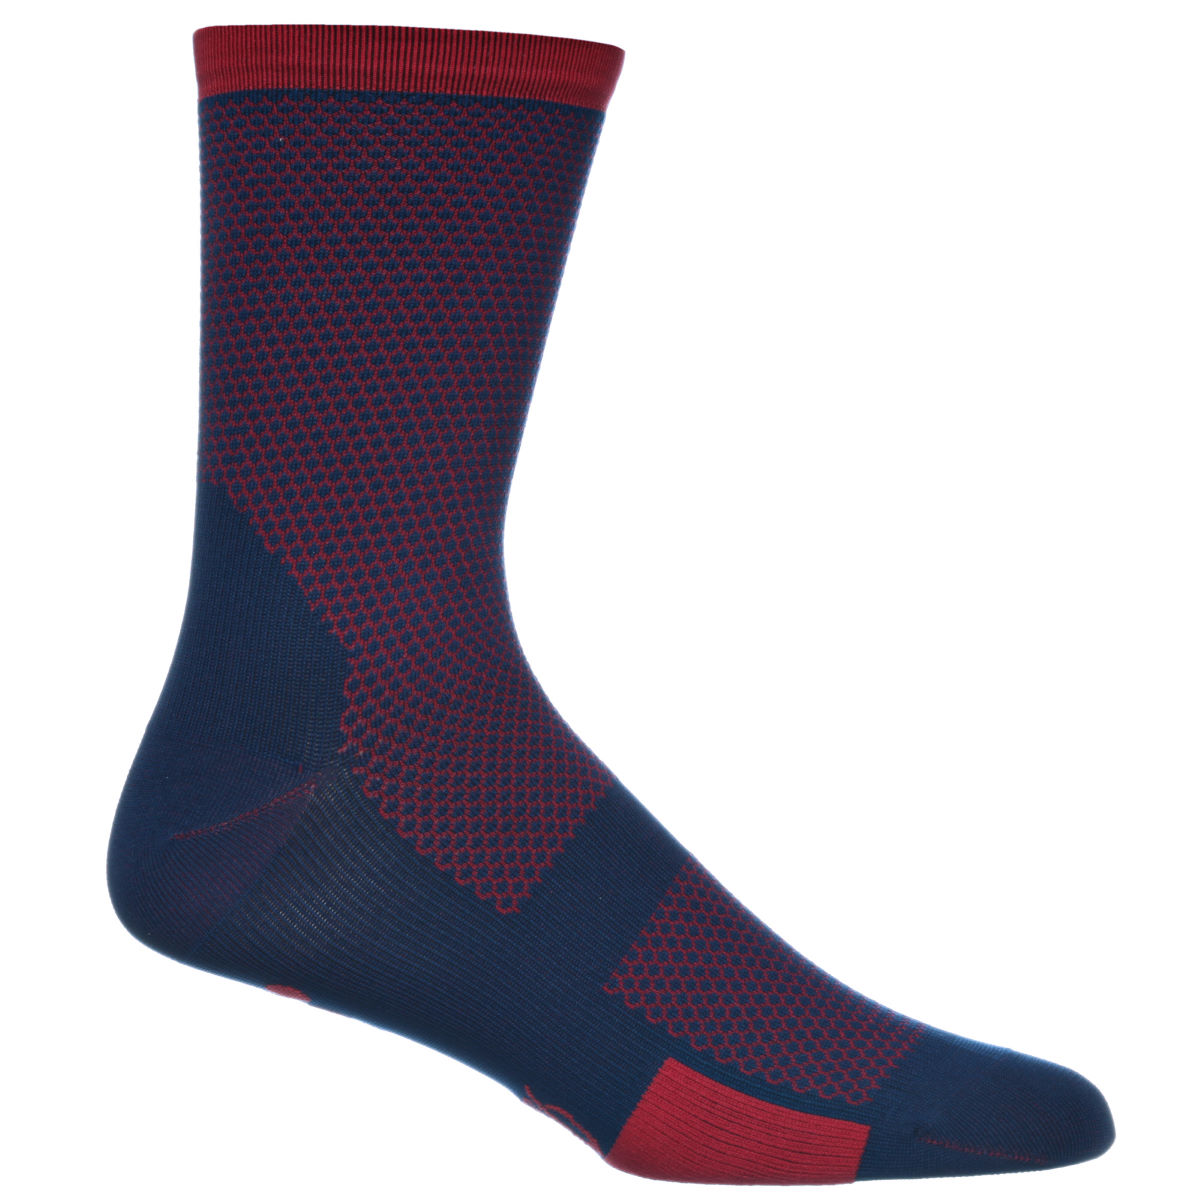 Chaussettes Isadore Albula Climbers - S/M Blue/Red Chaussettes vélo